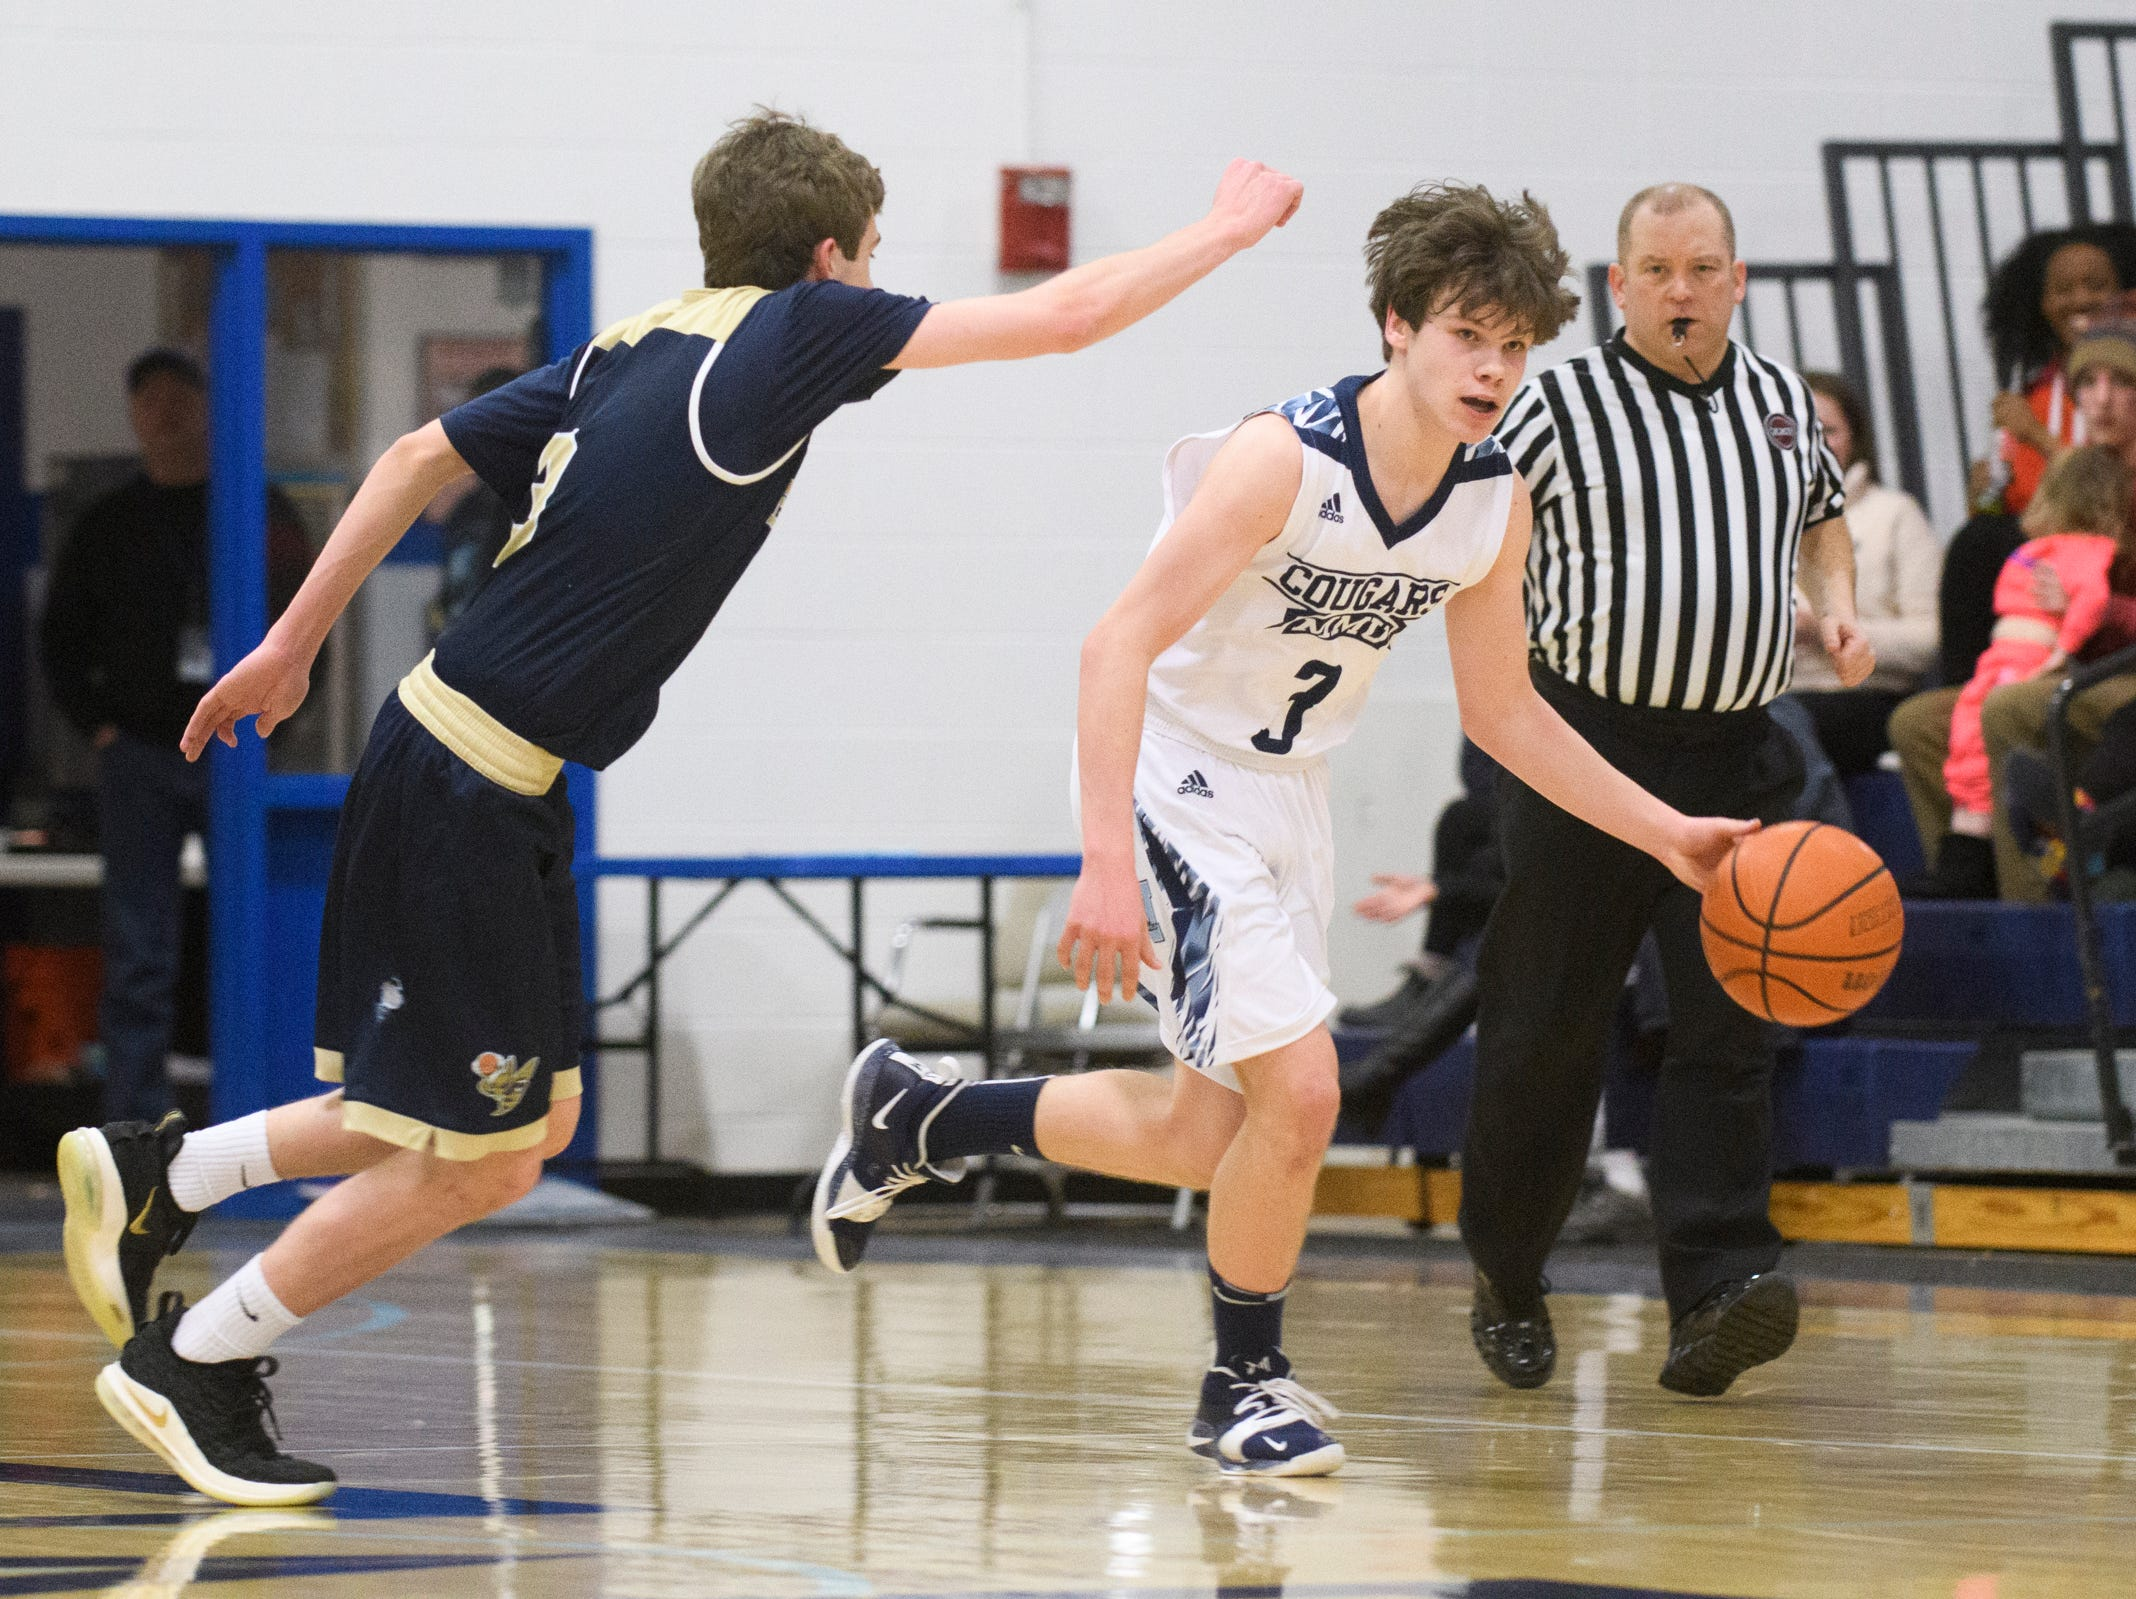 MMU's Justin Morse (3) dribbles the ball down the court past Essex's Brendan Brooks (3) during the boys basketball game between the Essex Hornets and the Mount Mansfield Cougars at MMU High School on Wednesday night February 13, 2019 in Jericho, Vermont.